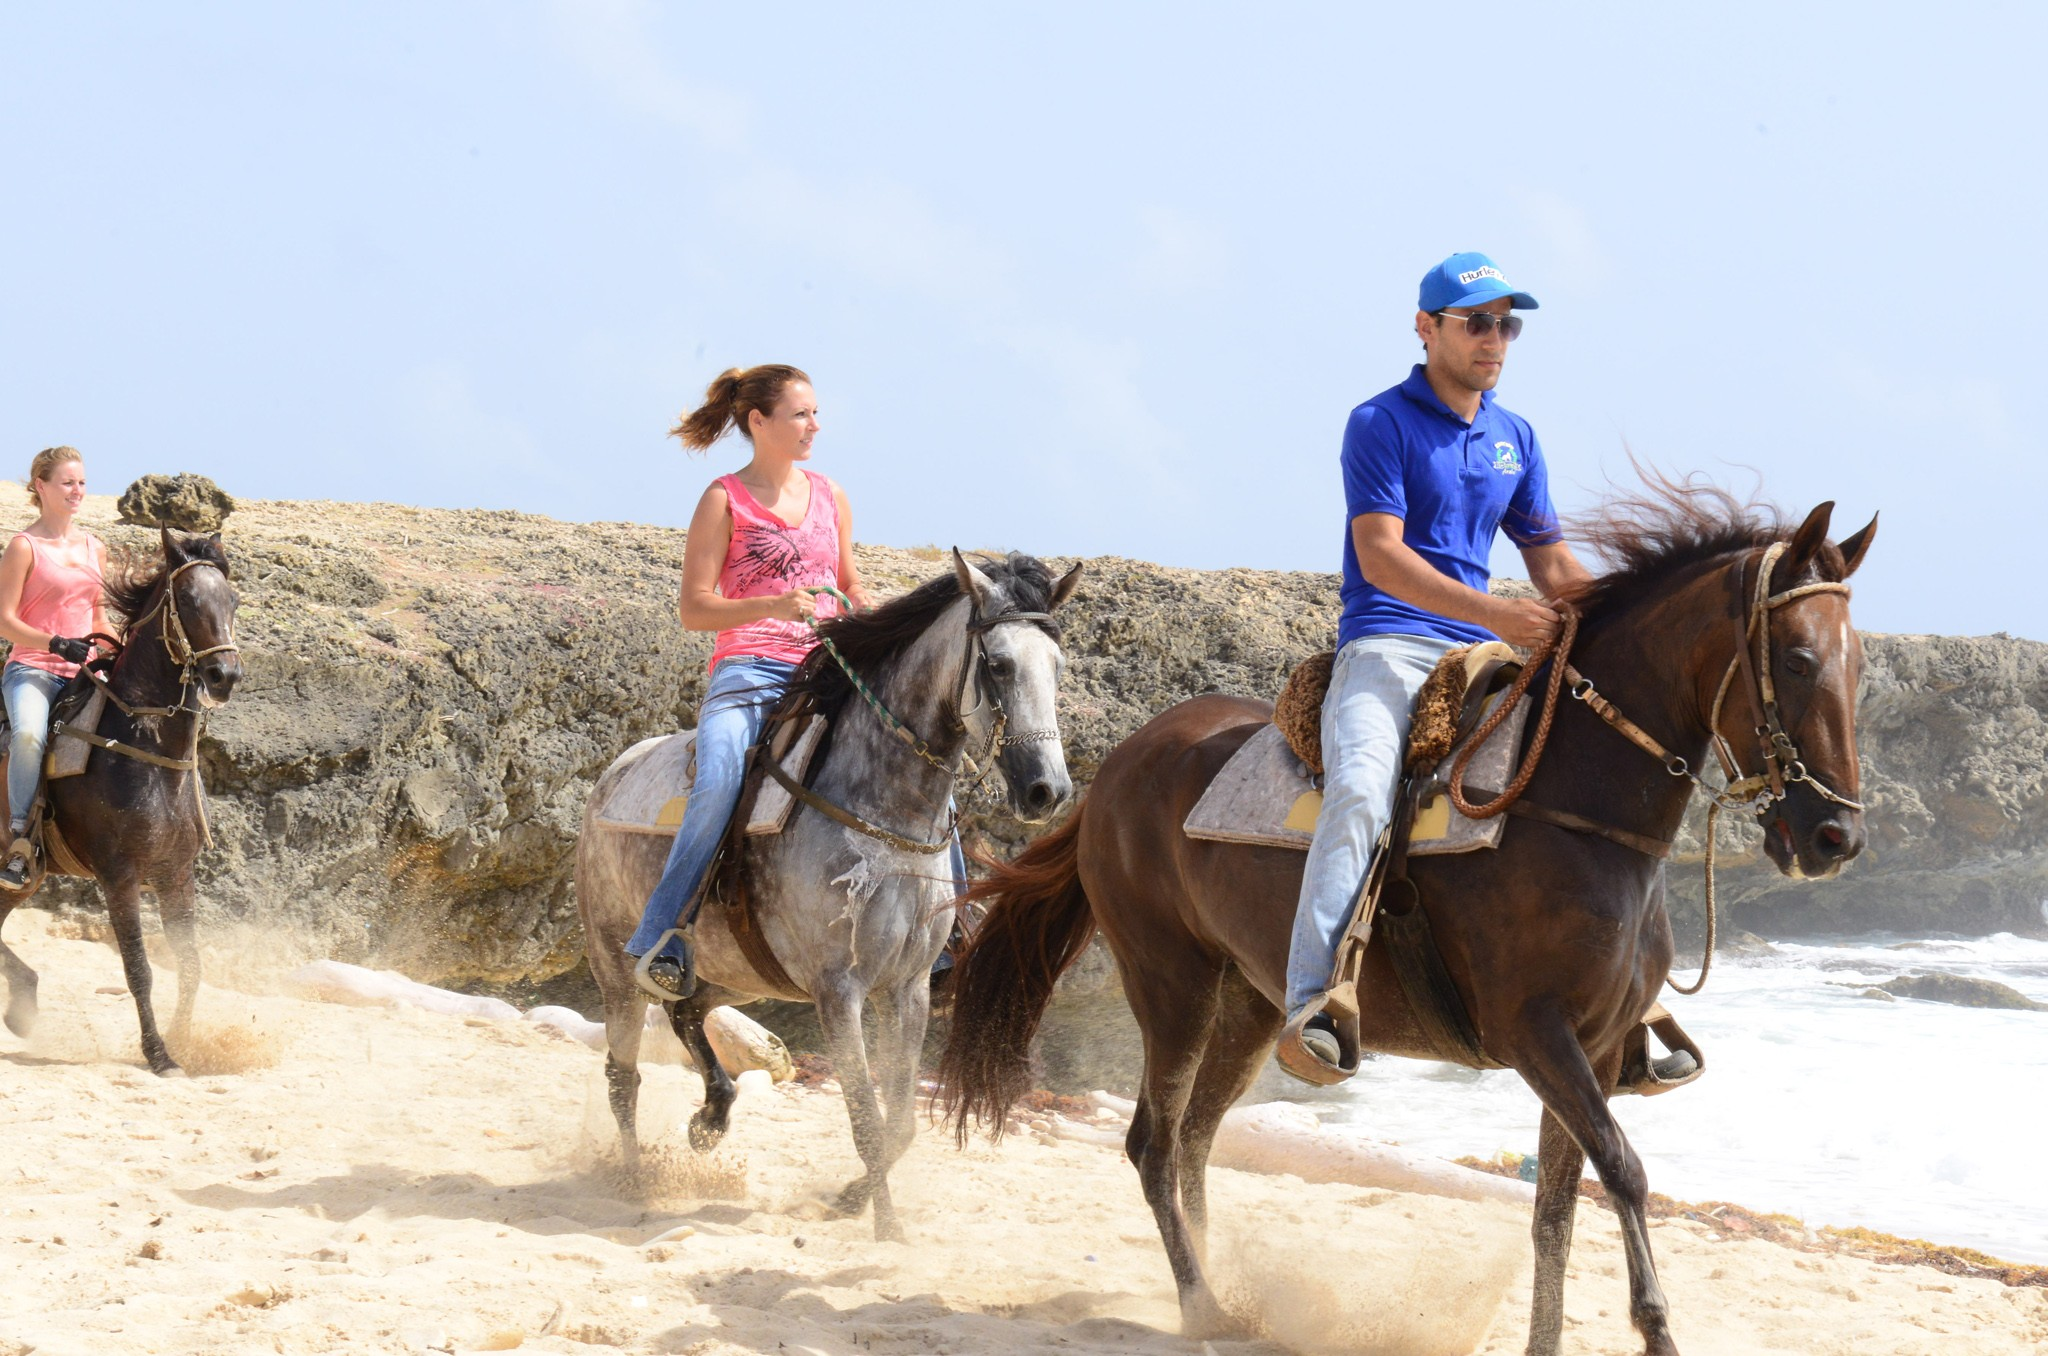 horseback riding Aruba activity